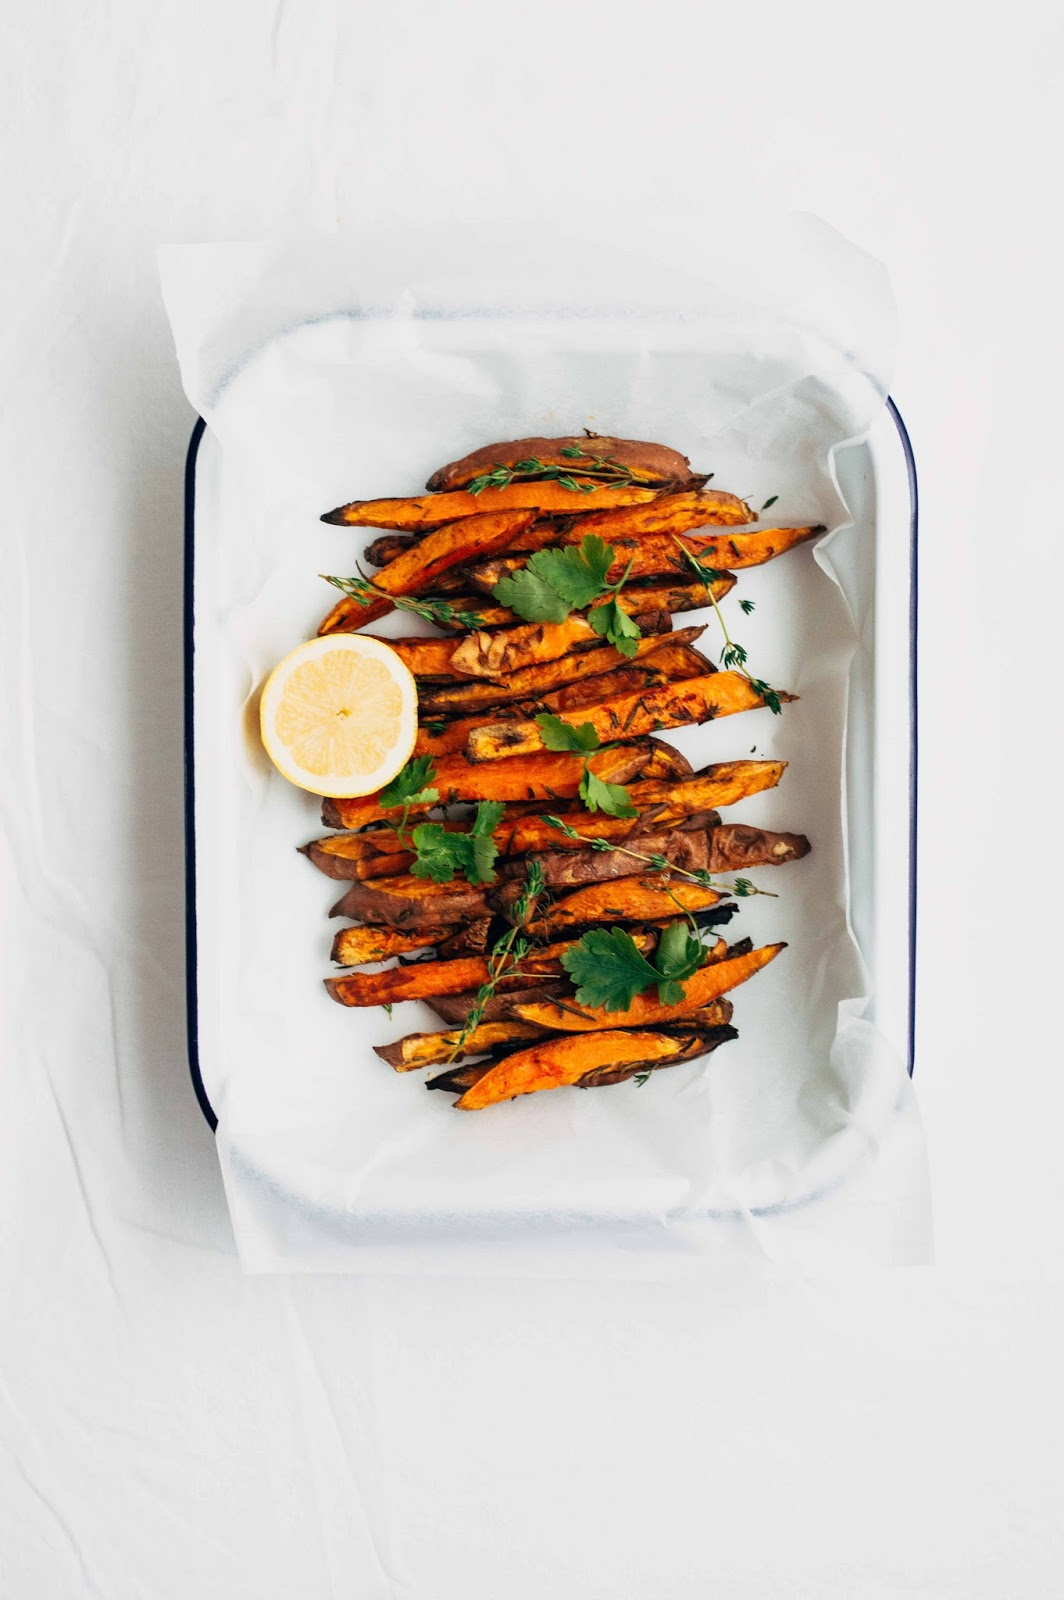 Baked Sweet Potato Fries w/ Turmeric Sauce | https://oandrajos.blogspot.com